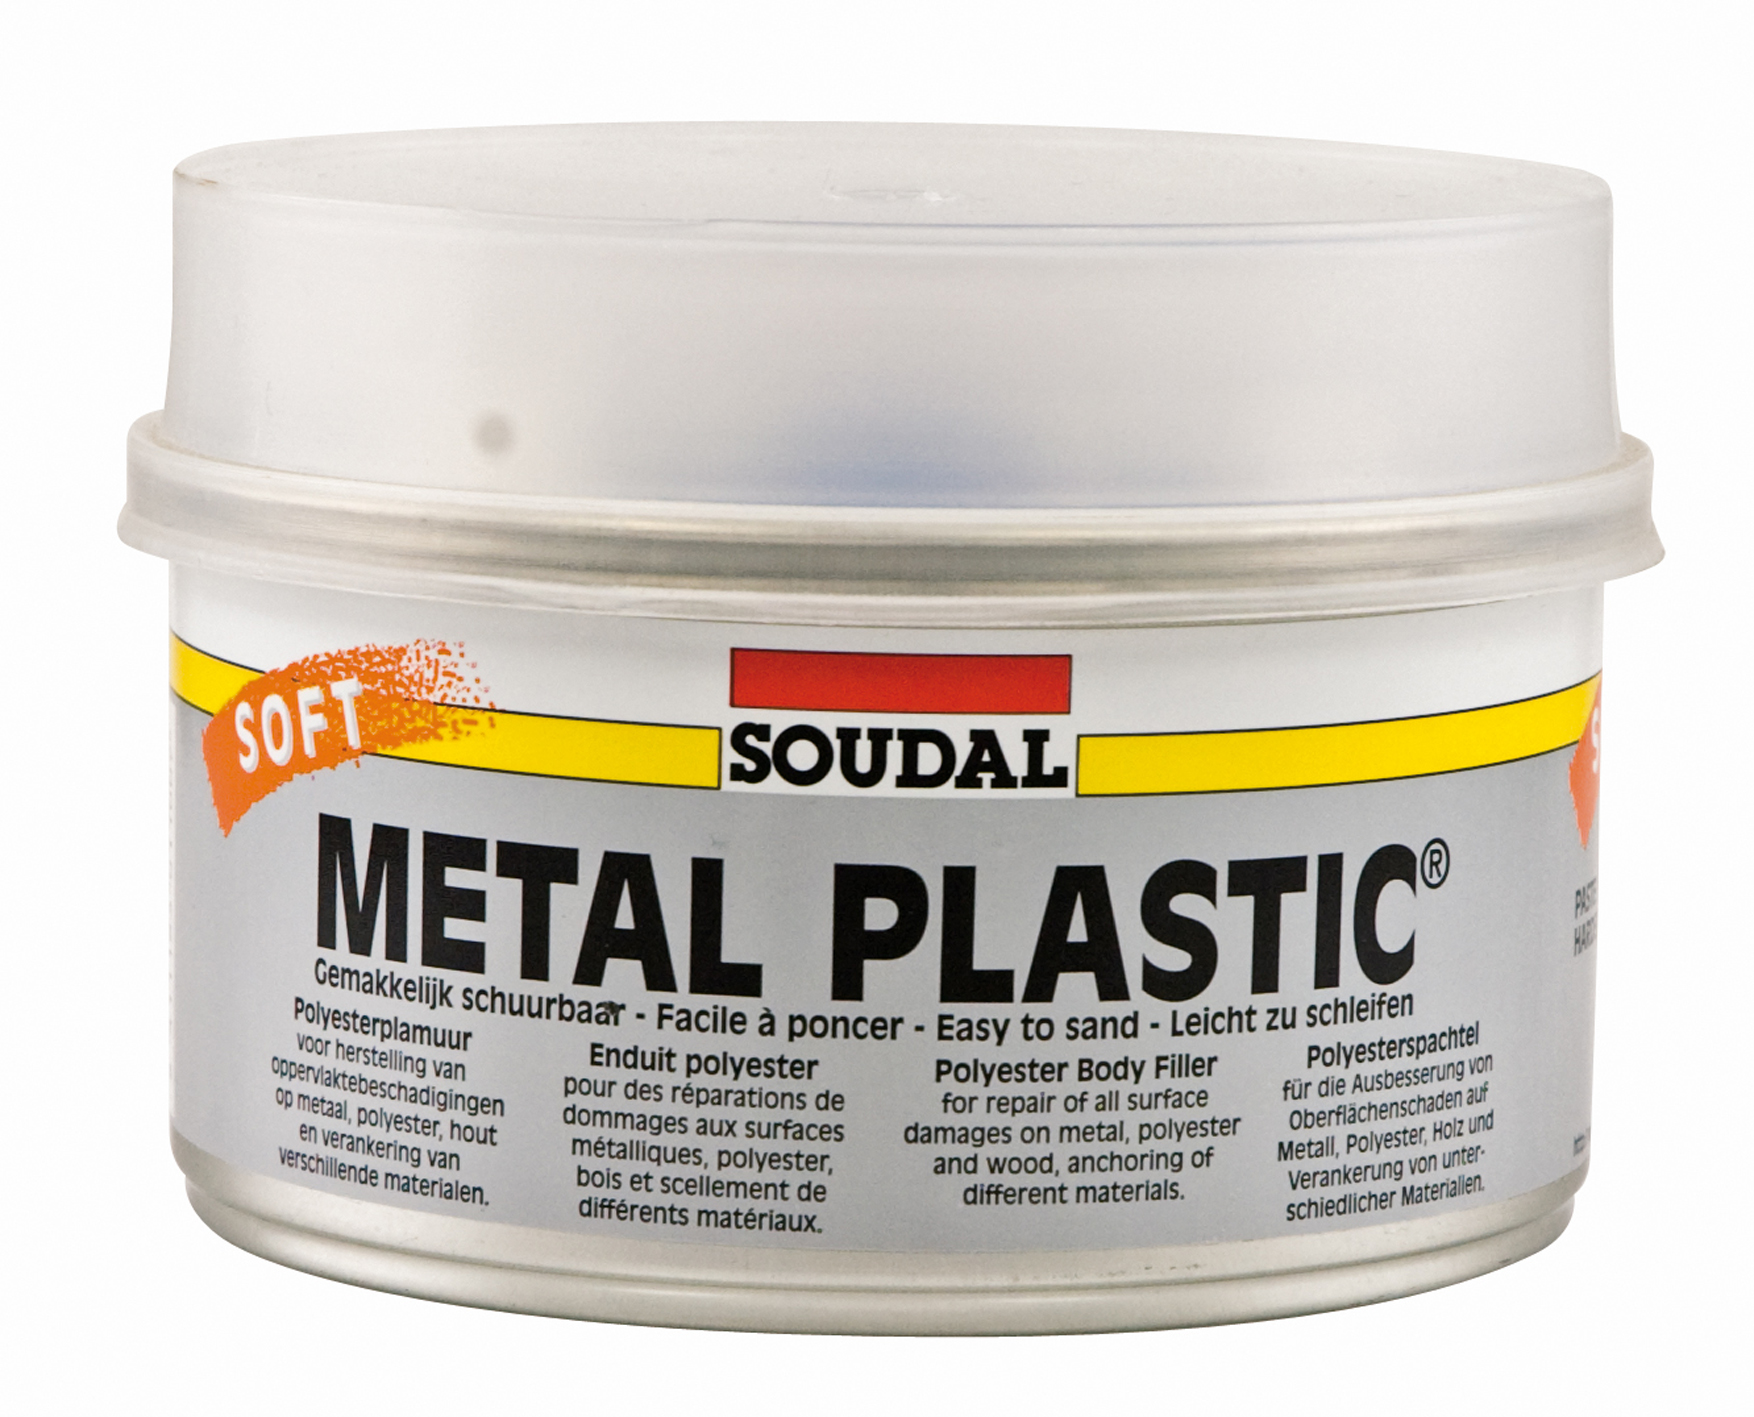 Soudal expertise in sealants pu foams and adhesives - Duidelijk plastic stoel ...